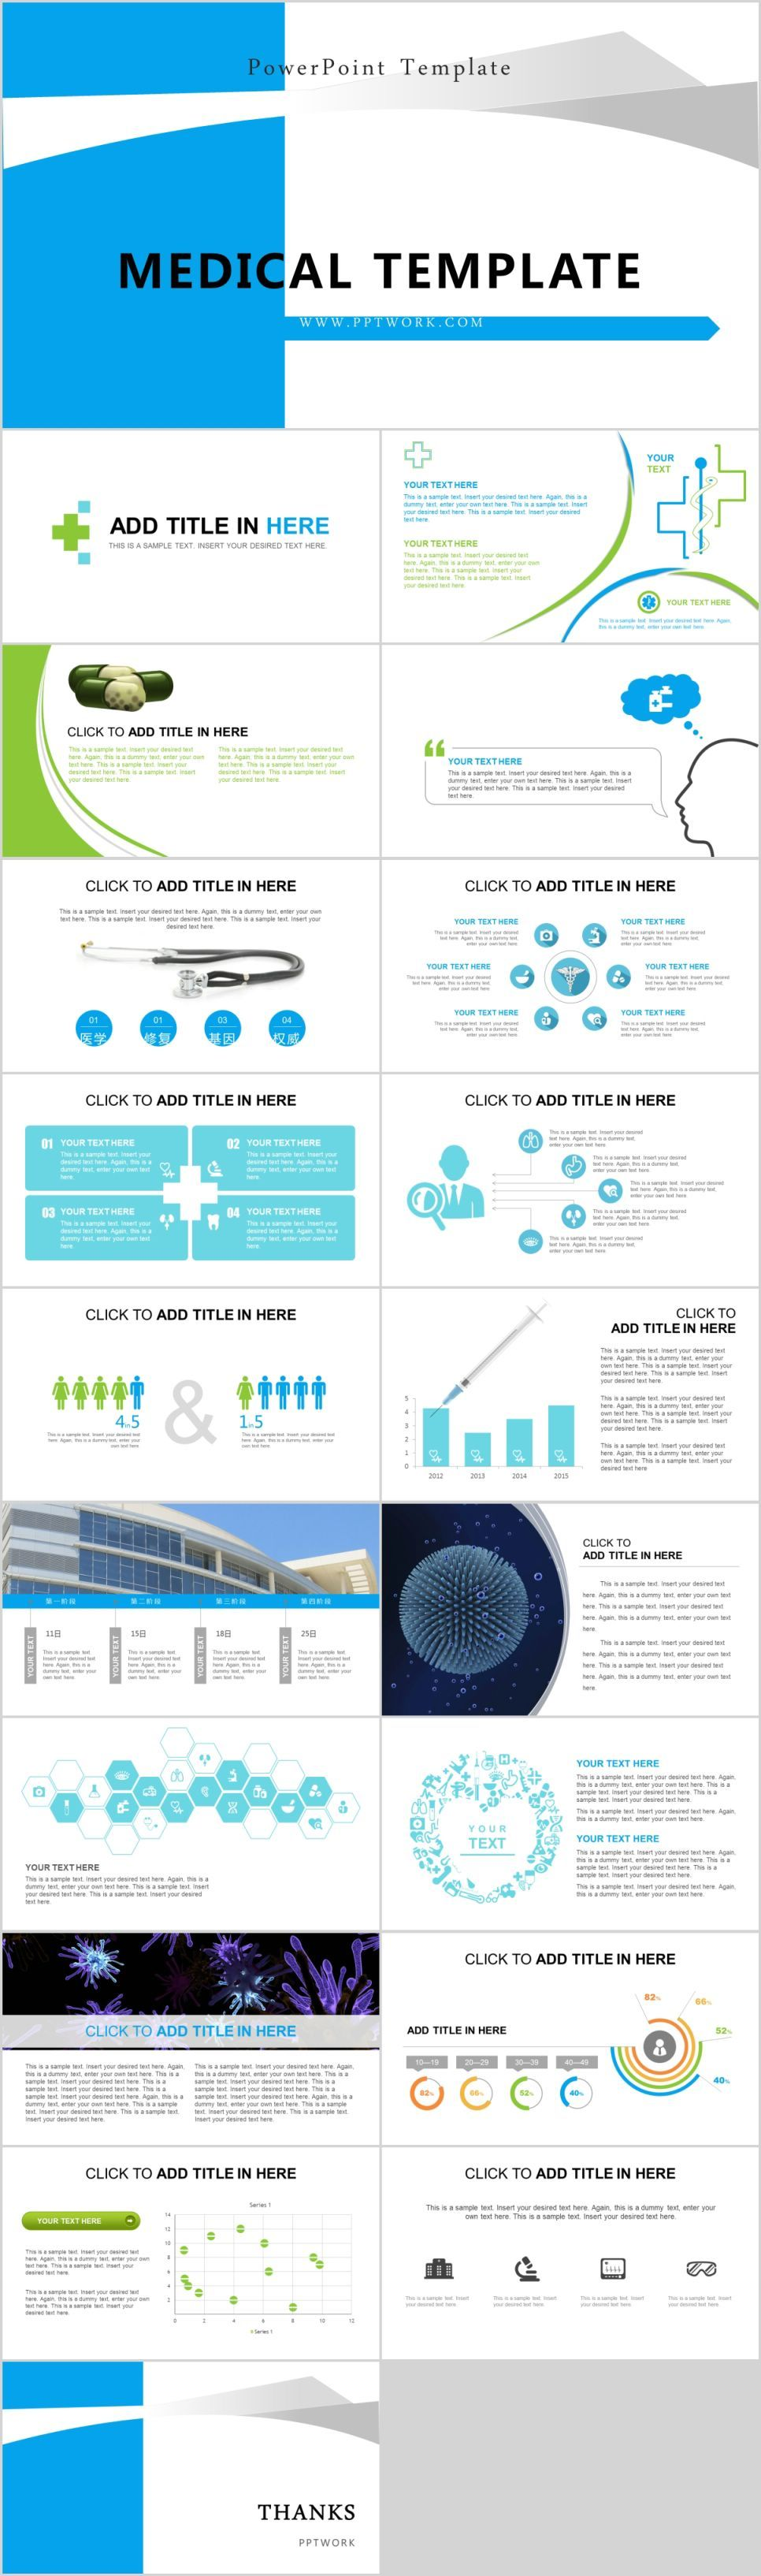 Clean medical service design PowerPoint template